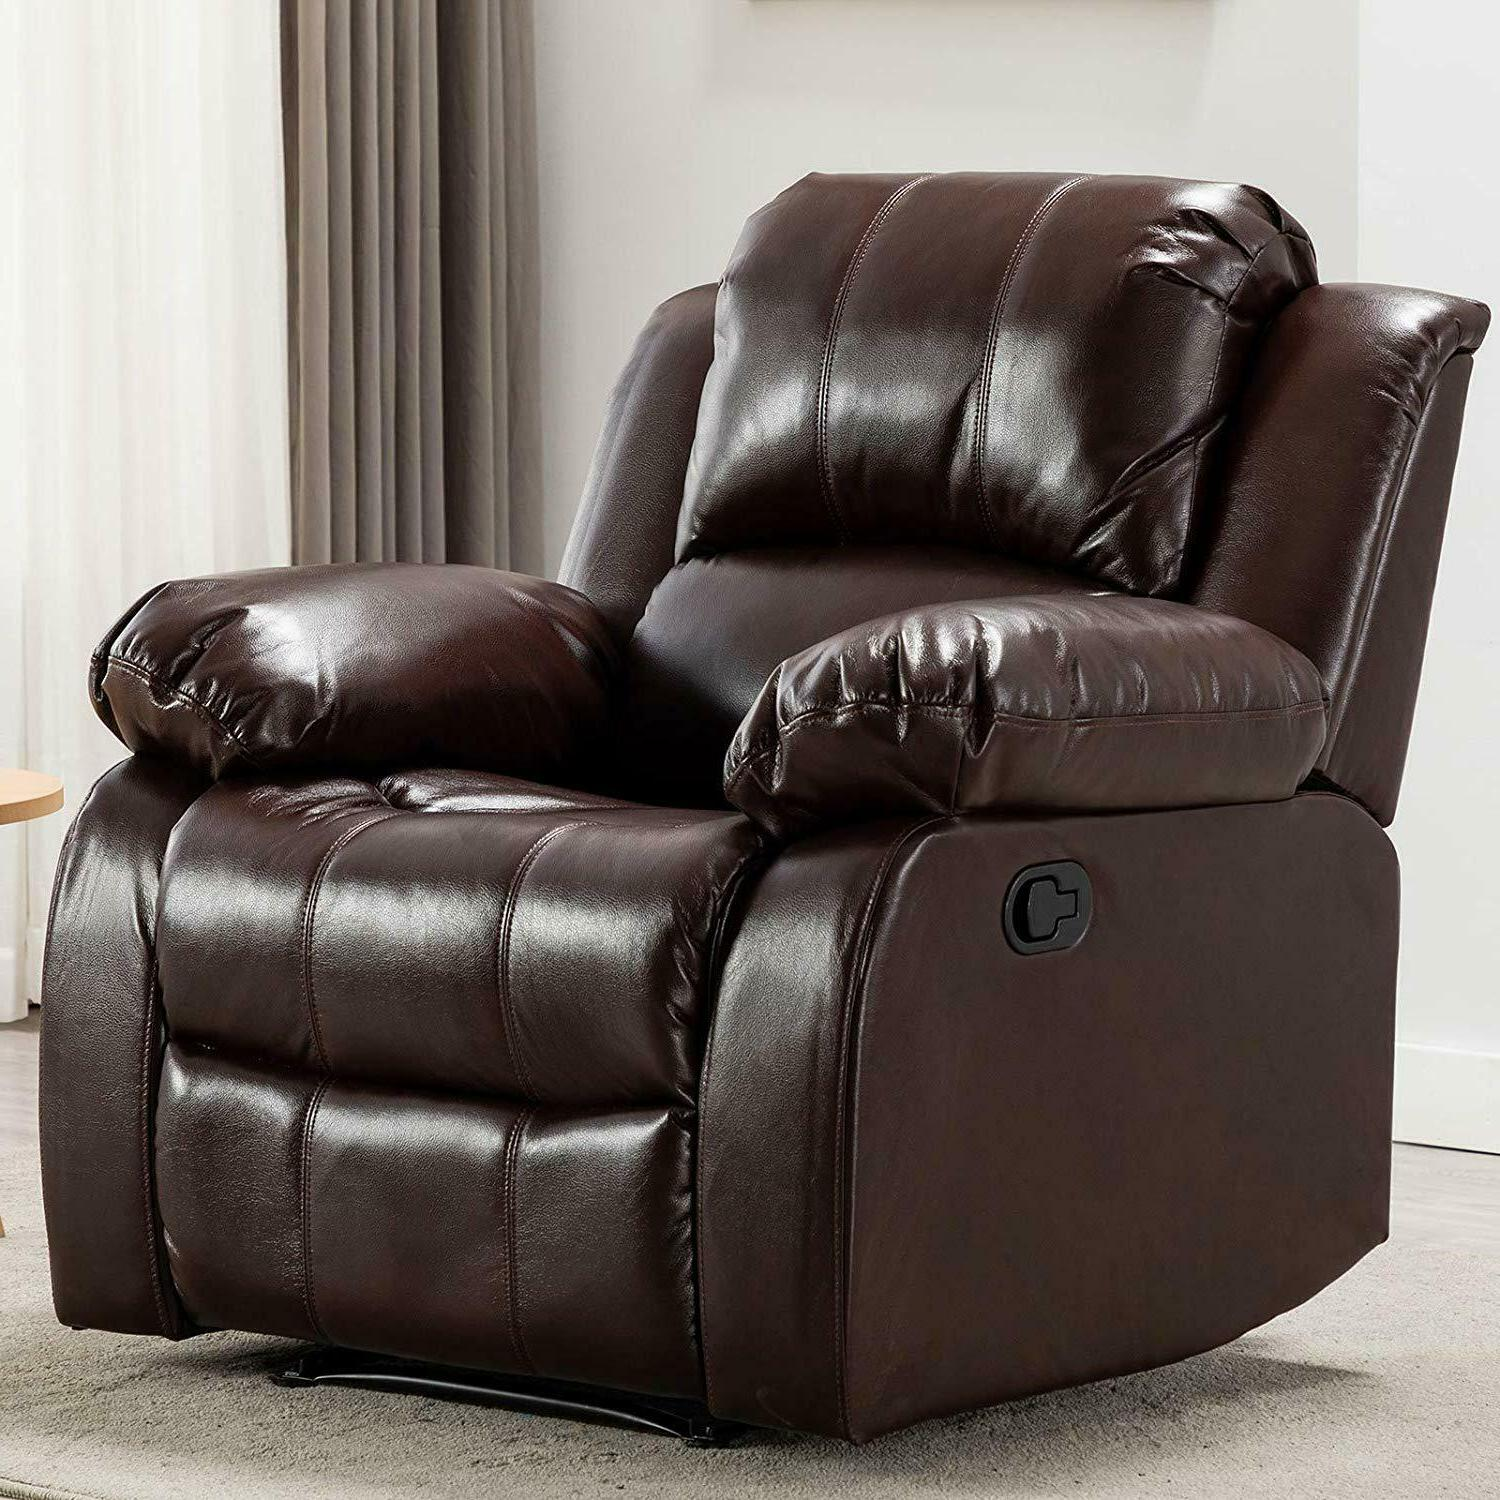 Manual Recliner Chair Breathable Bonded Leather Overstuffed